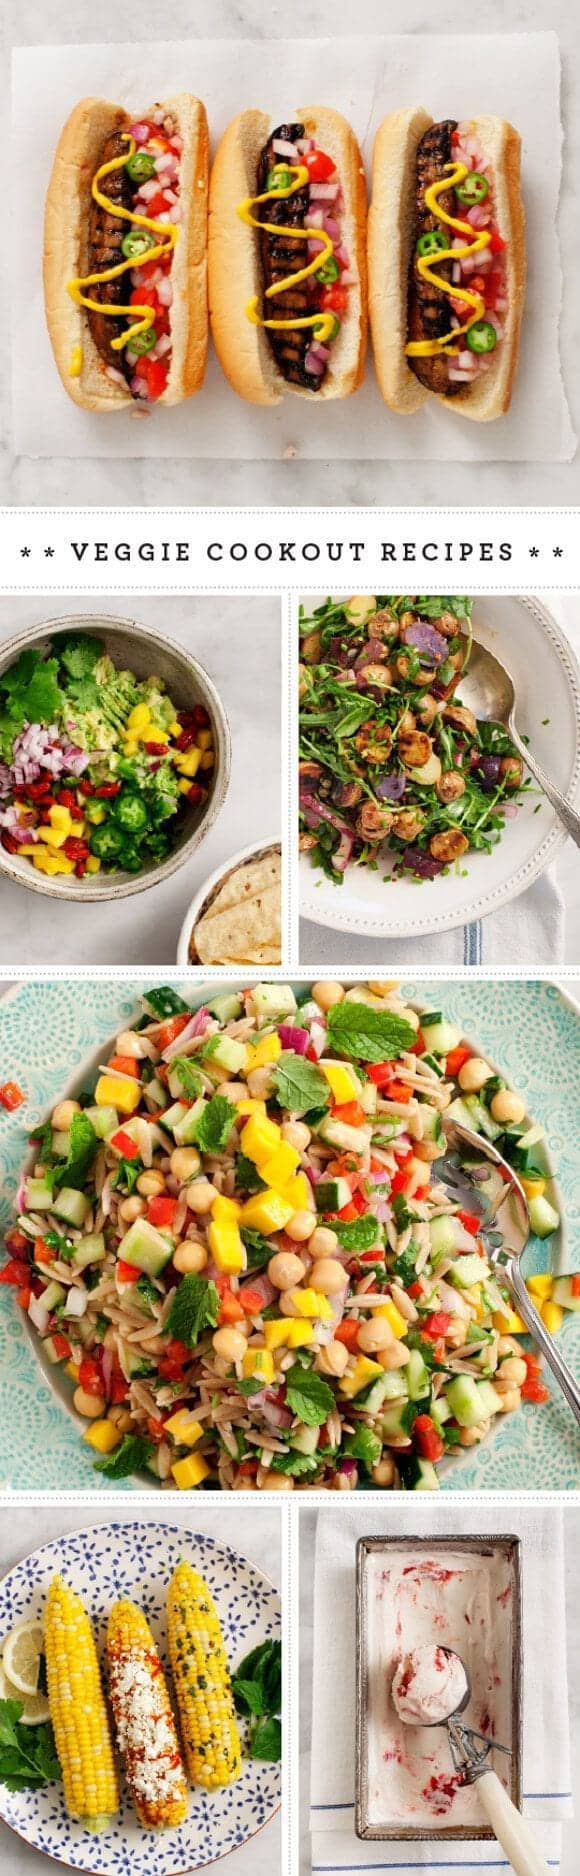 Veggie Cookout Recipes / loveandlemons.com